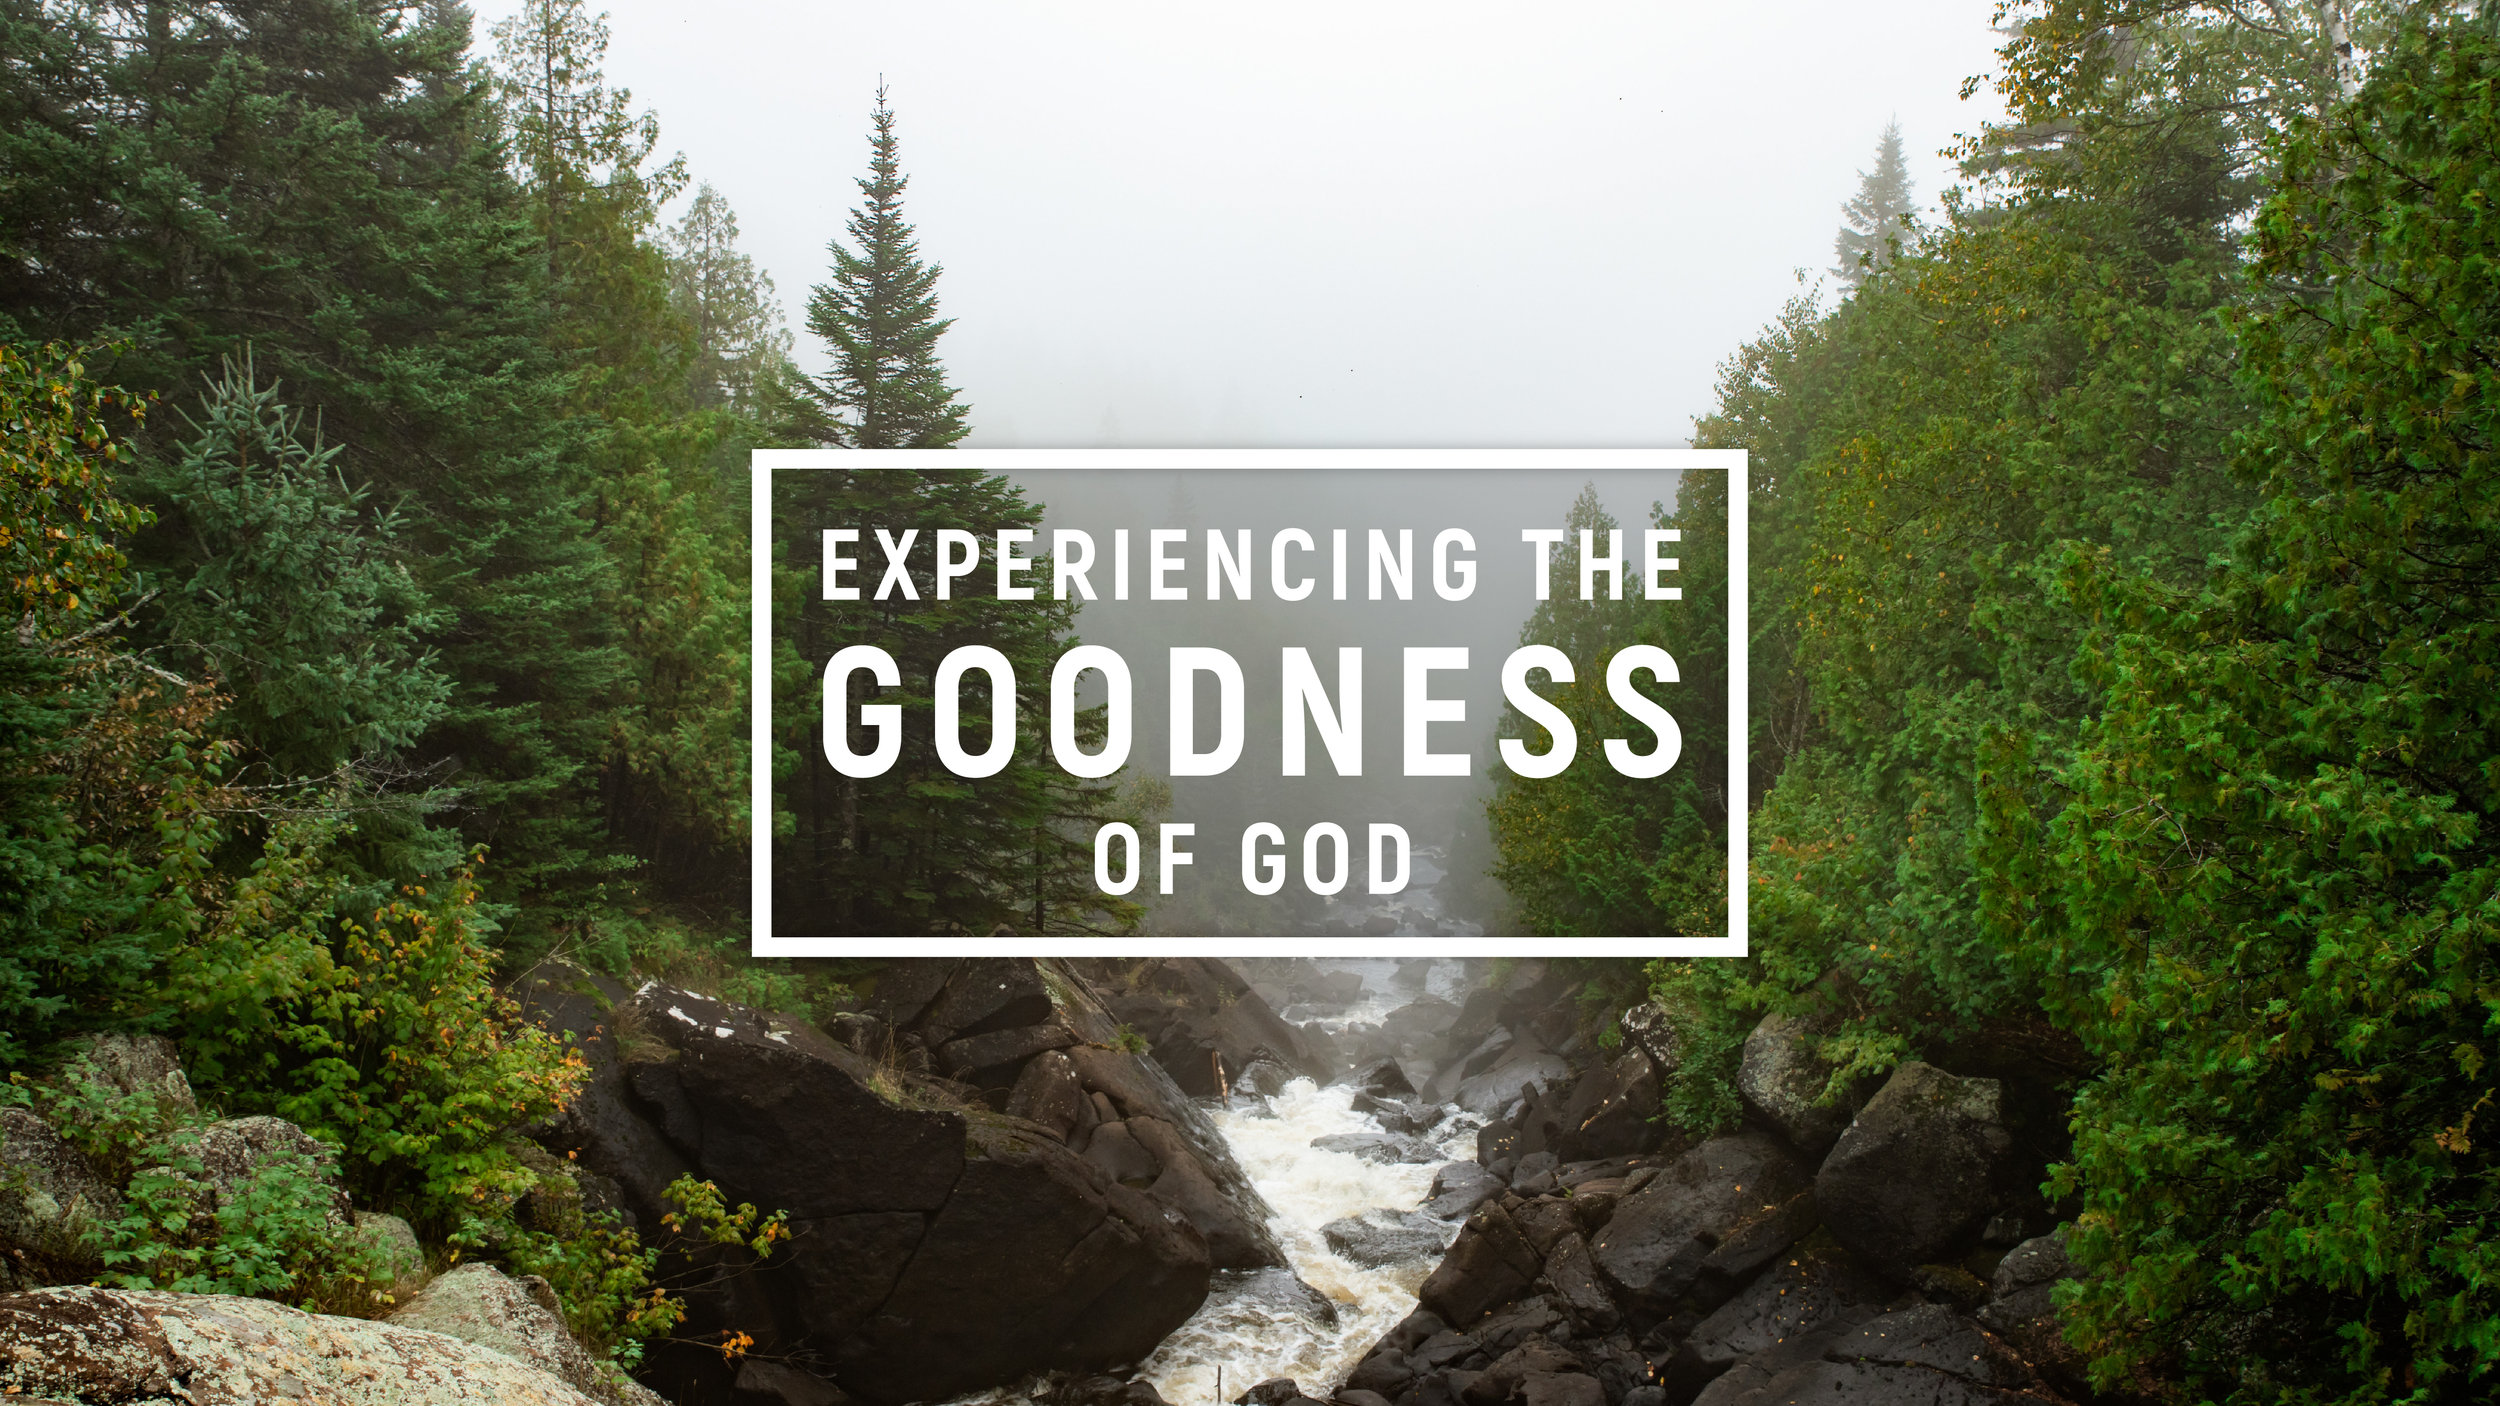 Experiencing the Goodness of God_Slide Final-01.jpg